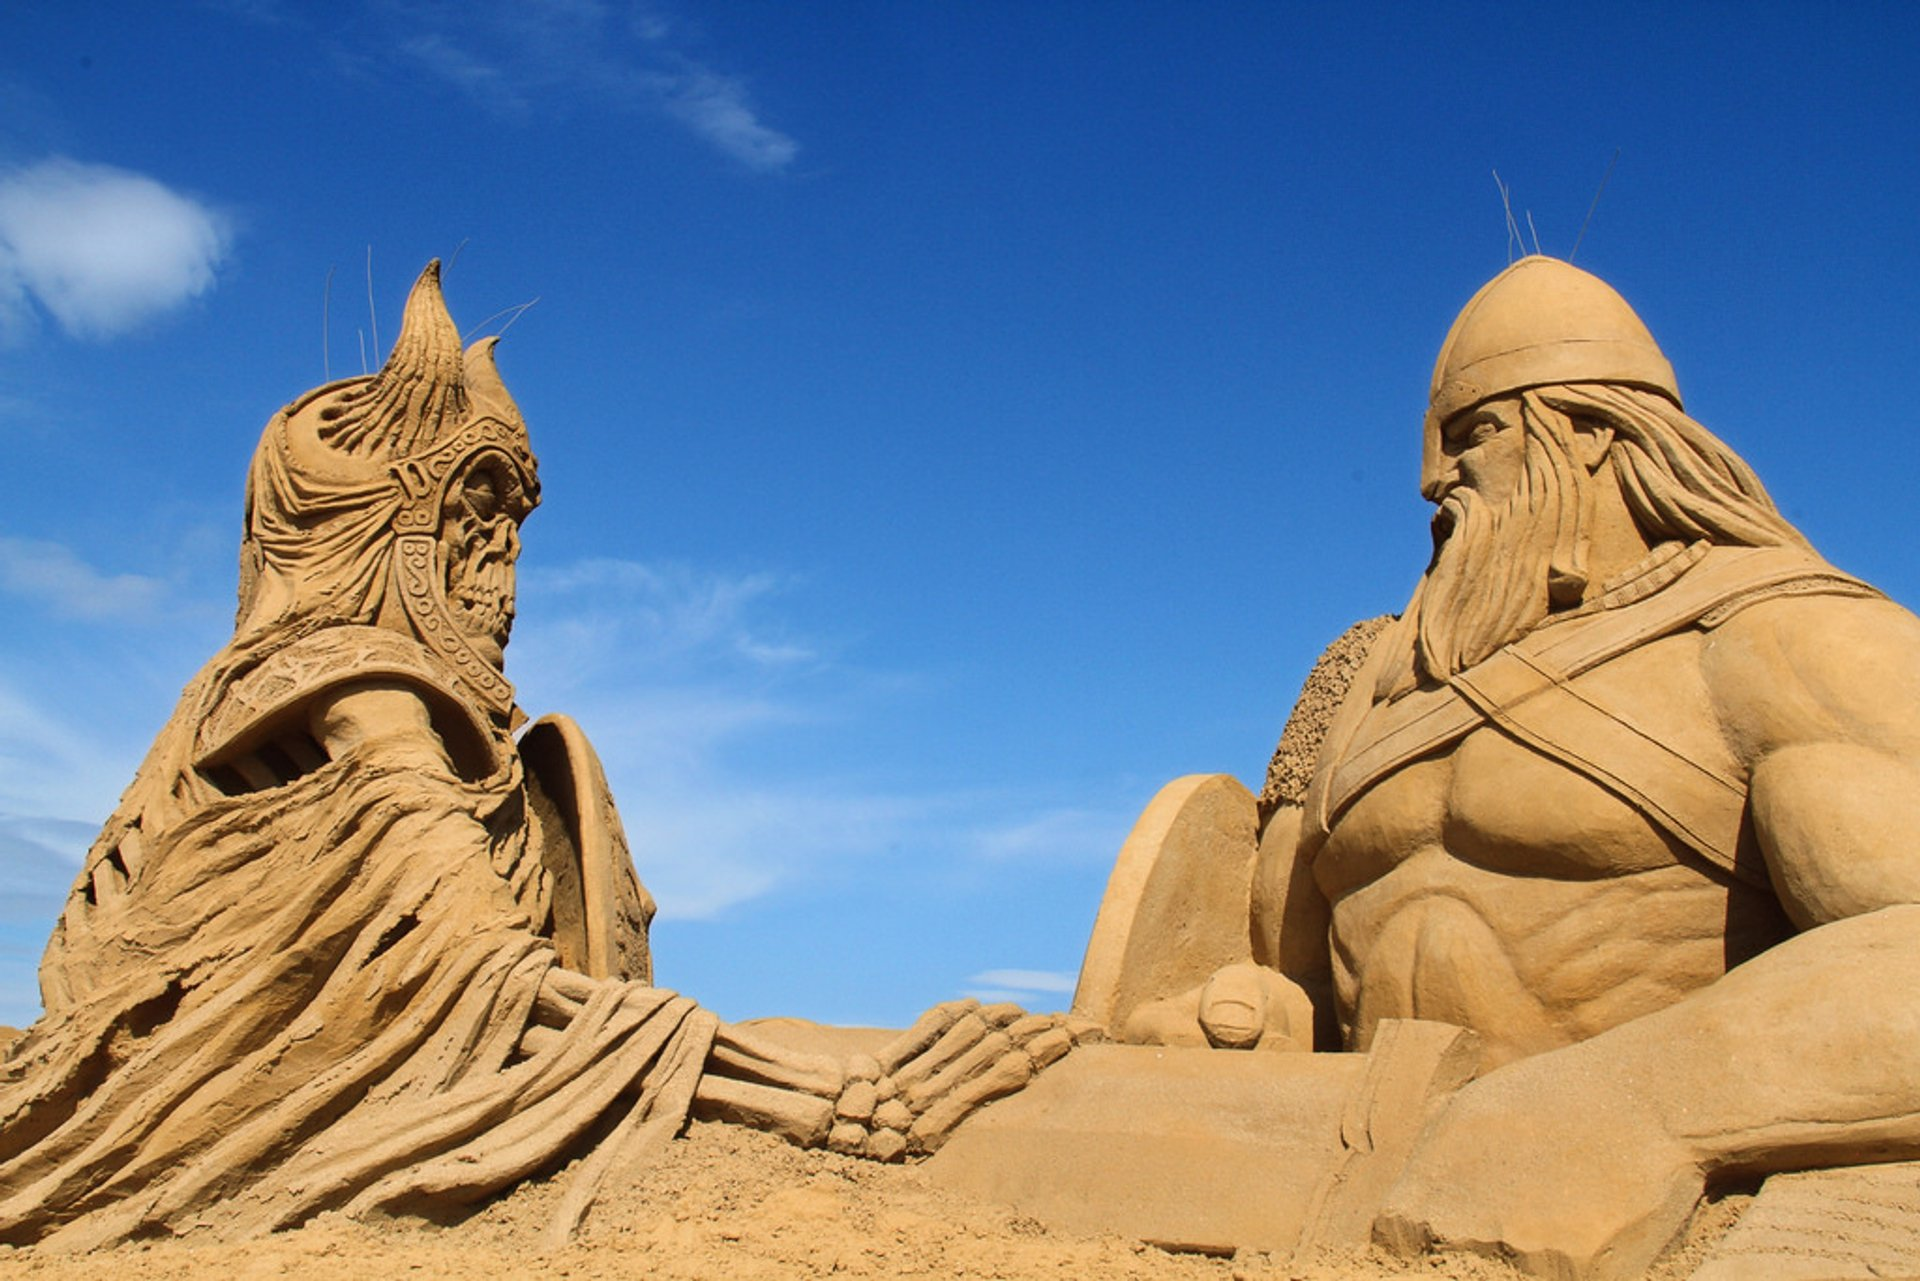 Søndervig Sand Sculpture Festival in Denmark 2019 - Best Time